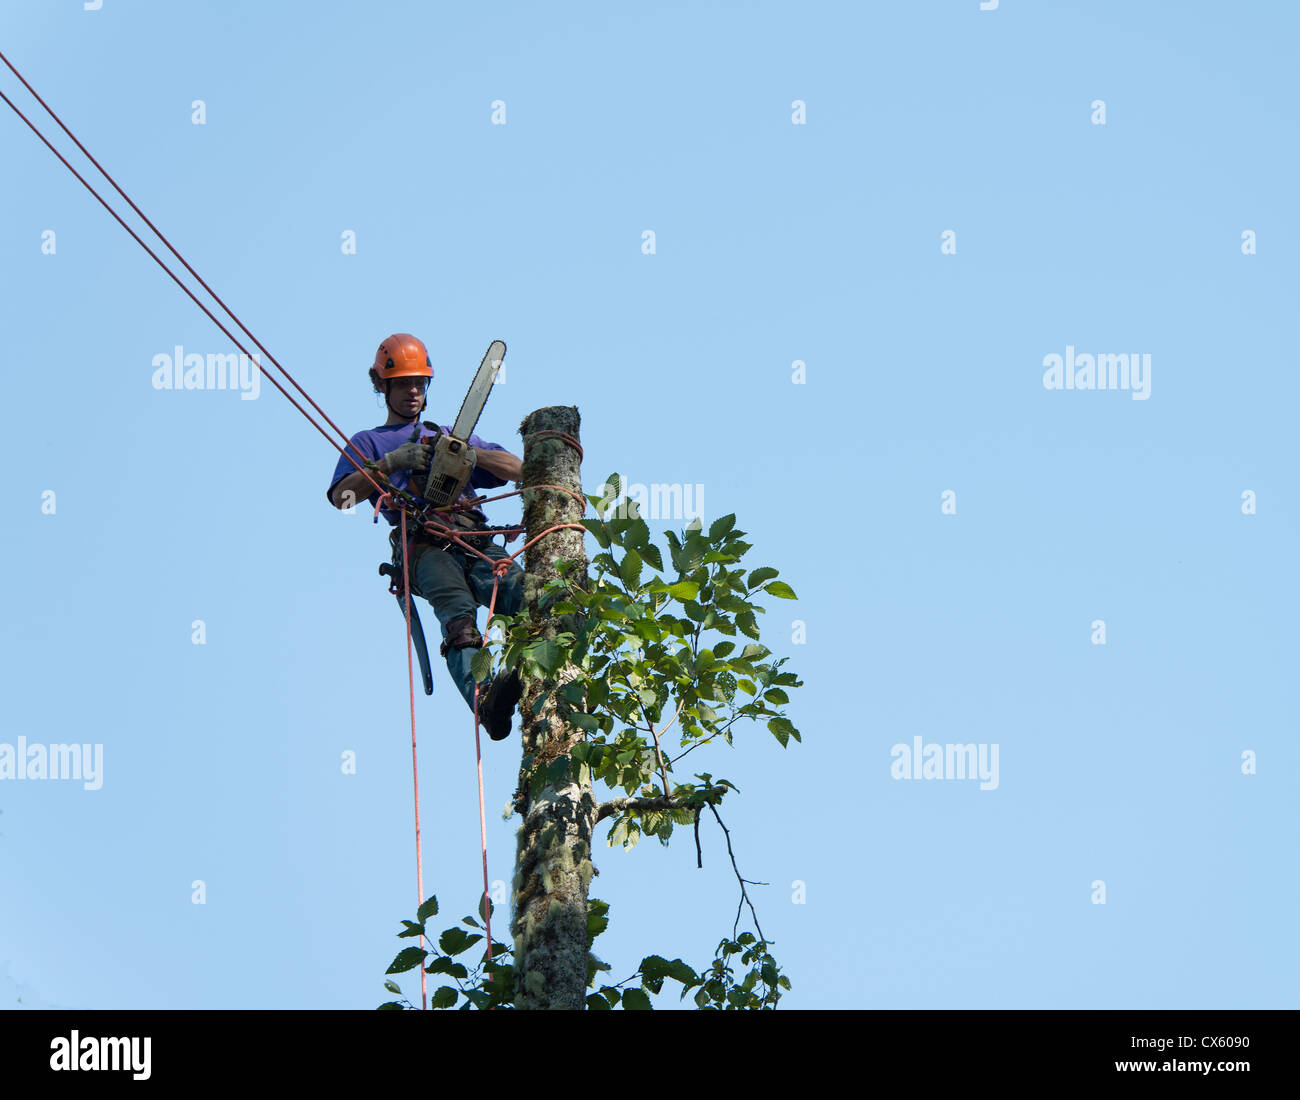 A tree trimmer adjusts his chainsaw after topping a dying tree in a residental area. - Stock Image